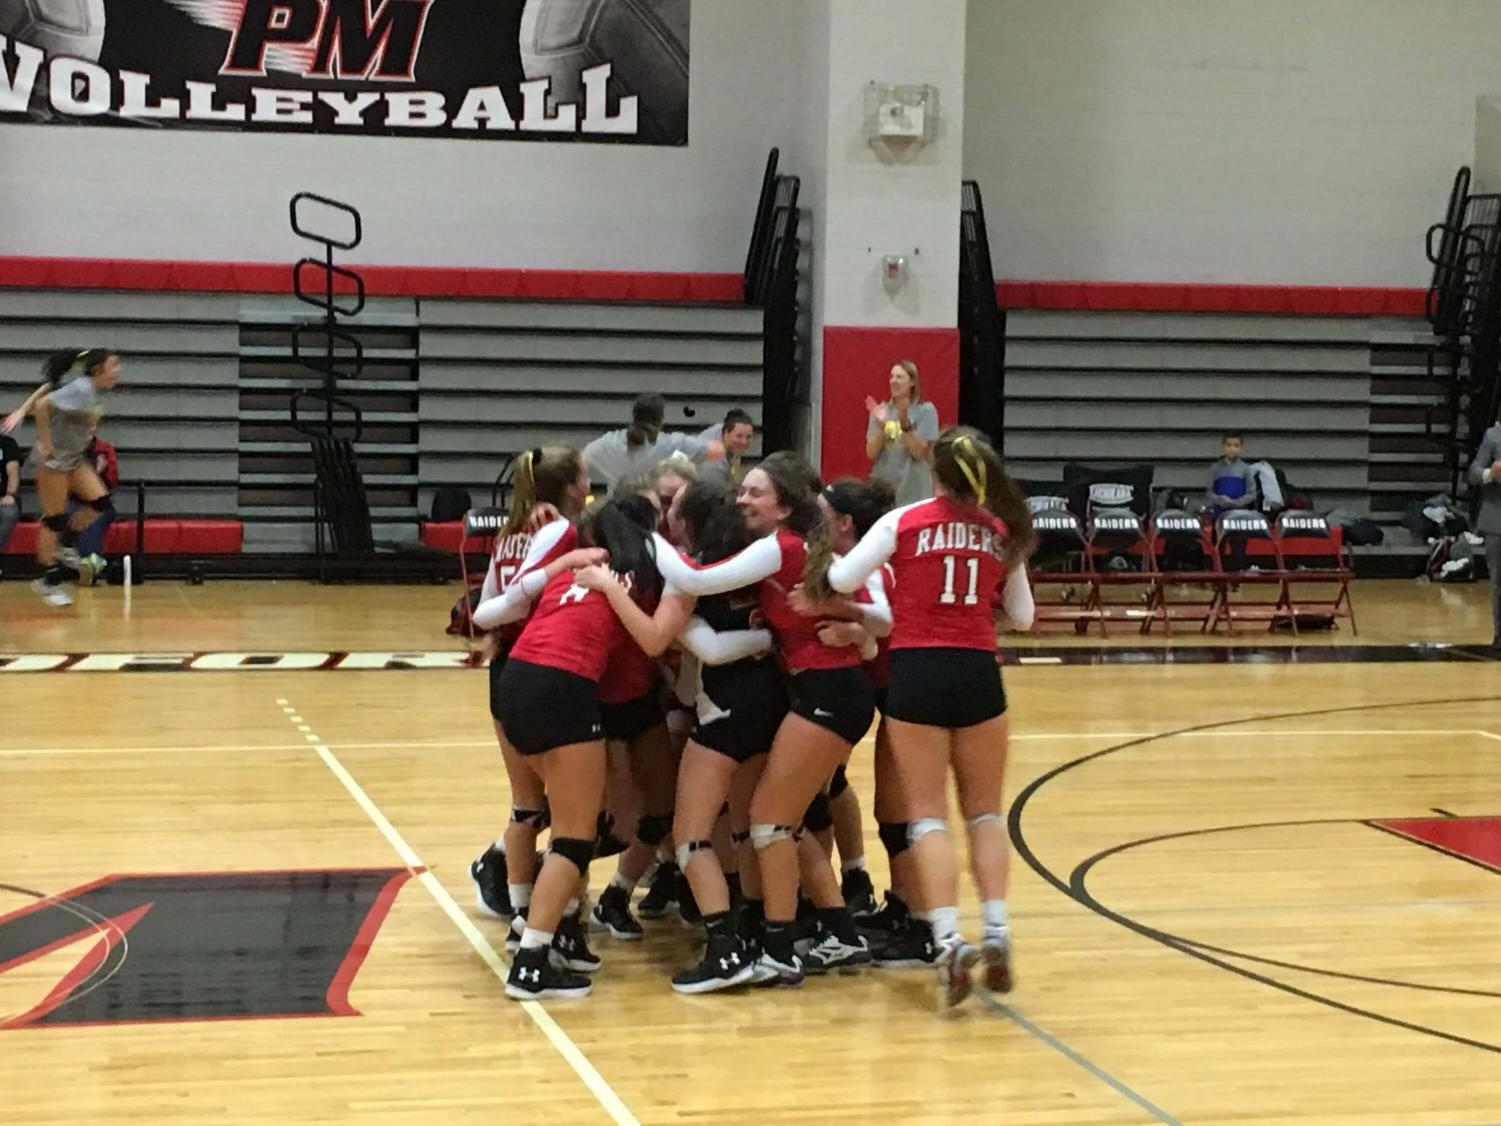 The girls' volleyball team huddle together and celebrate an amazing win over Ward Melville.